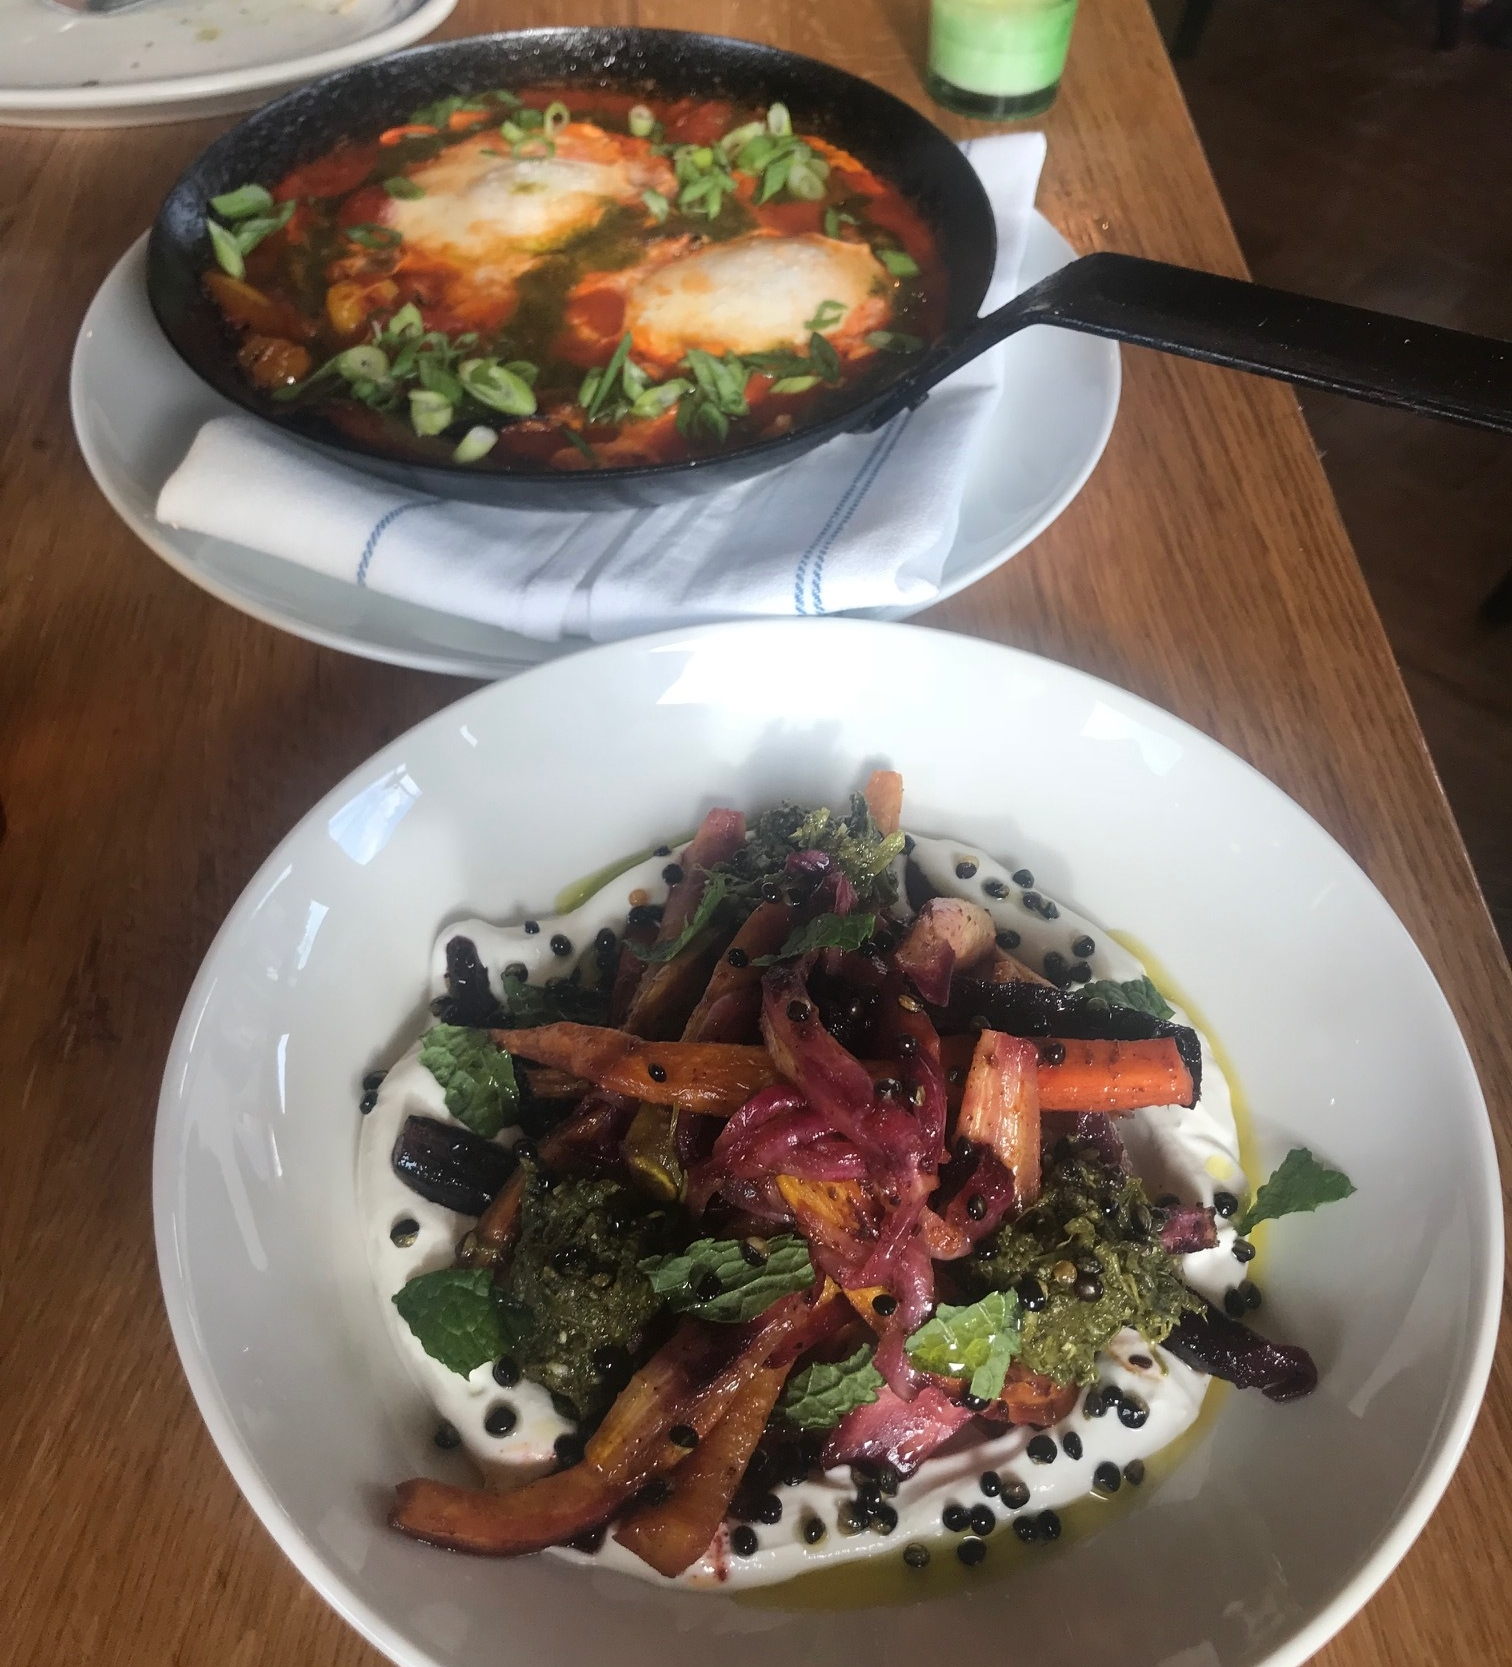 The Moroccan Carrot salad (front) and the Shakshouka (back).